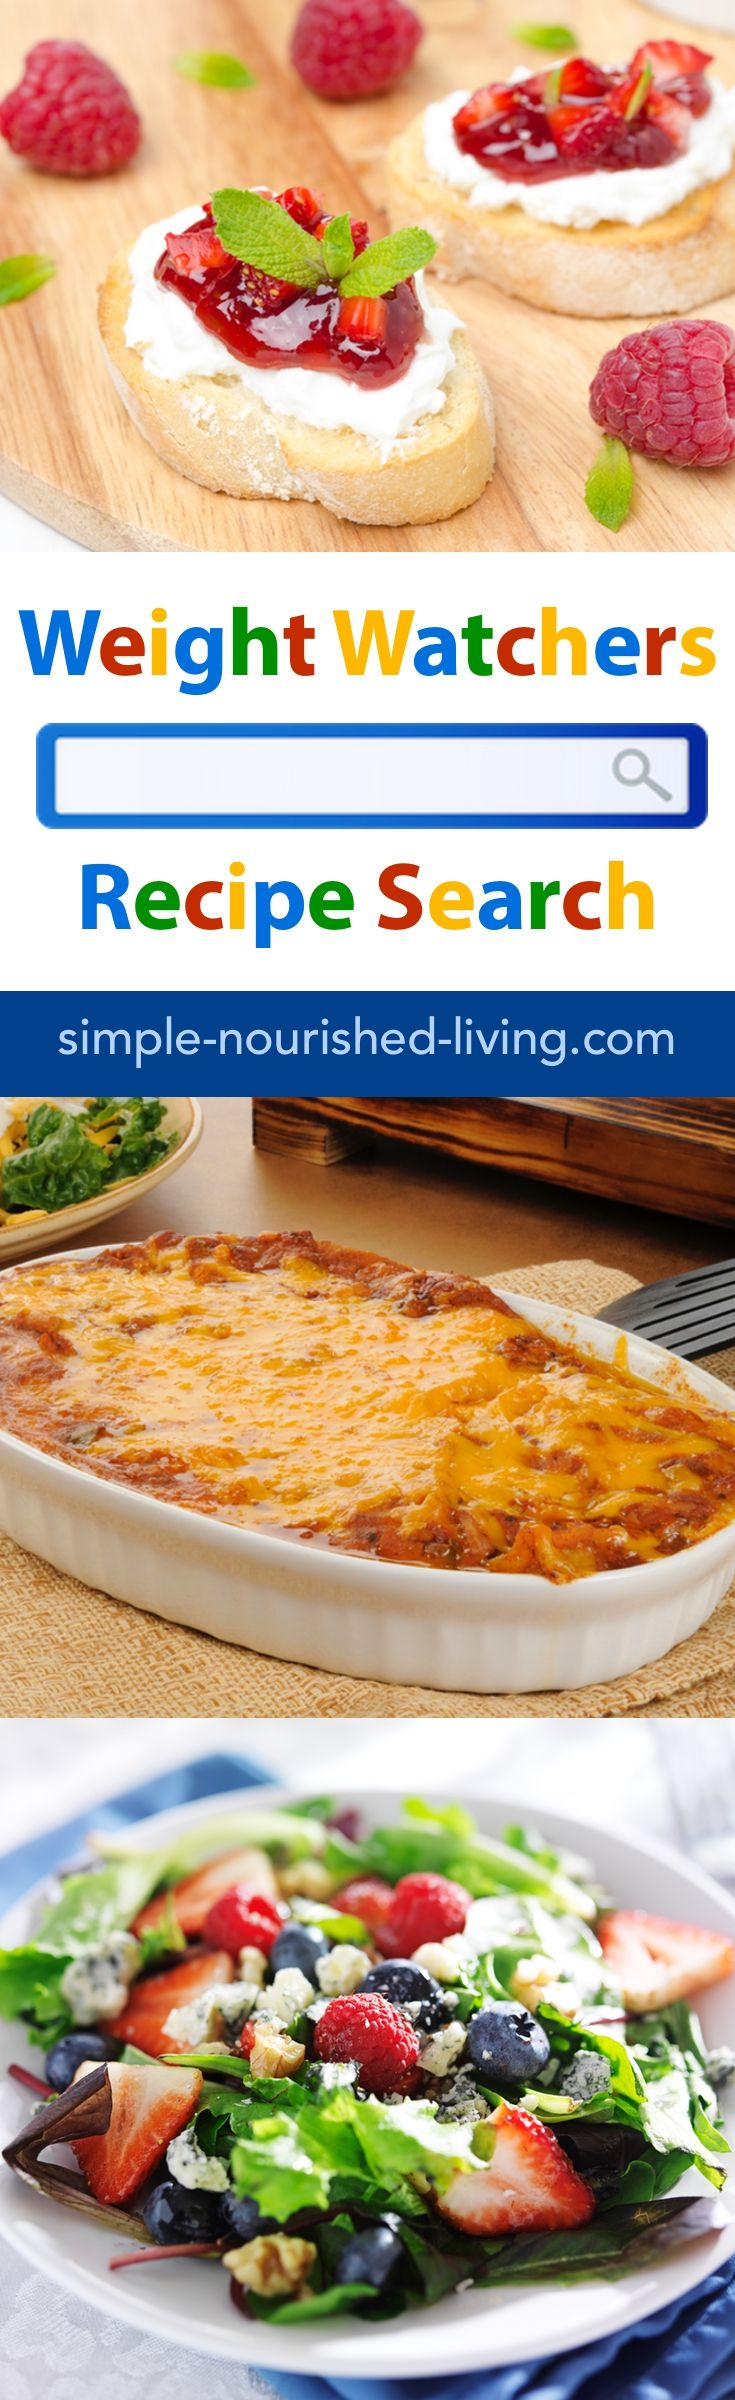 Why search the entire Internet when you can simply search the best hand-picked Weight Watchers friendly websites (SkinnyTaste, SimpleNourishedLiving, HungryGirl, SnackGirl, DrizzleMeSkinny, SlenderKitchen, LaaLoosh, SkinnyKitchen, EmilyBites, MealPlanningMommies, EatYourselfSkinny, DashingDish and more) to find all the easy healthy recipes you want!